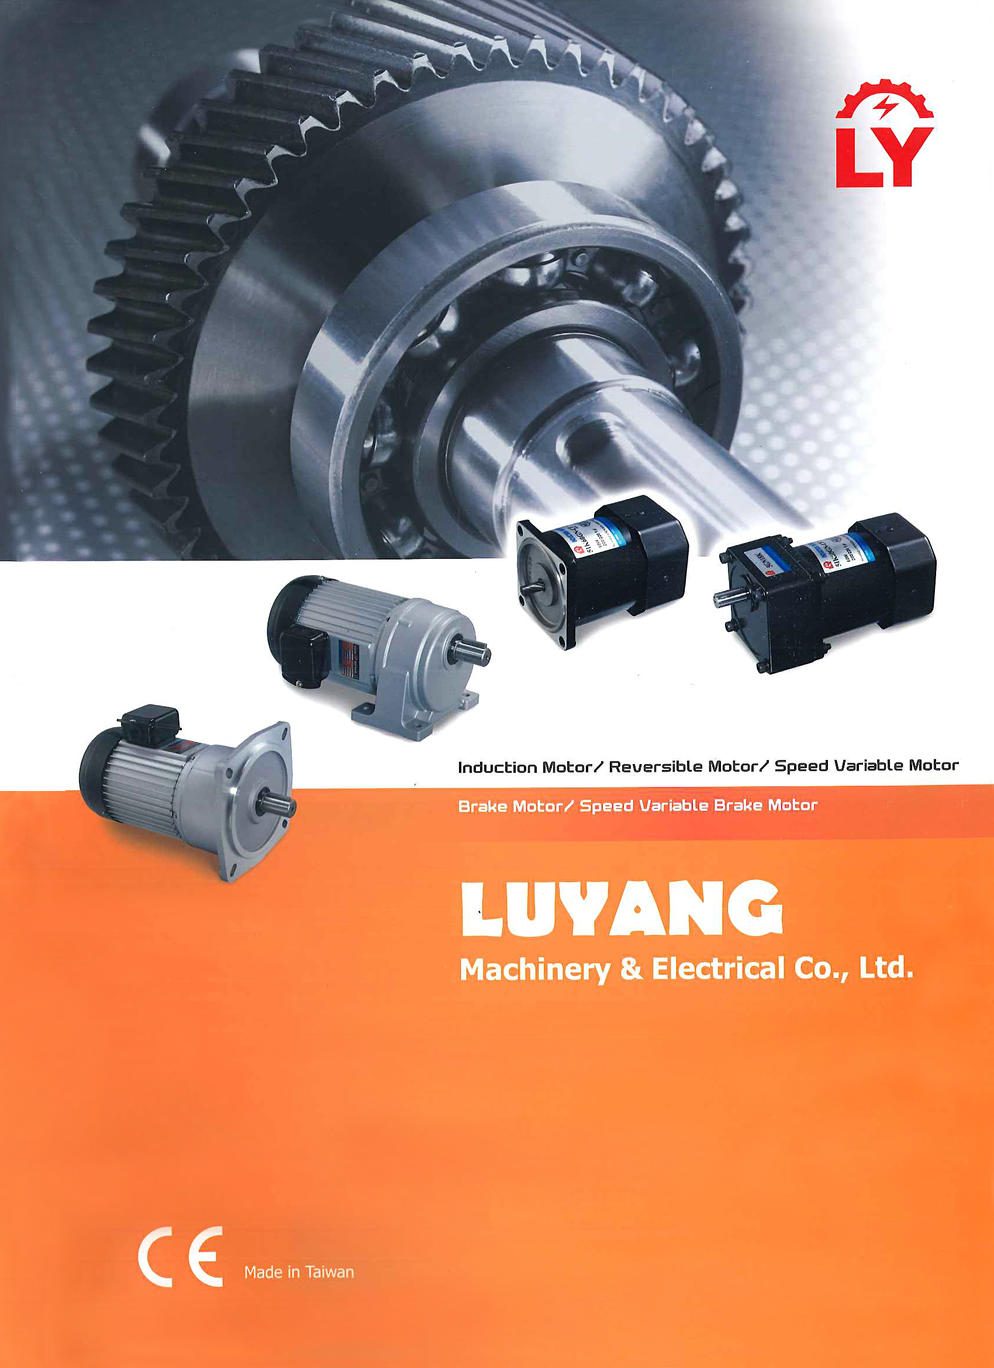 LUYANG Machinery & Electrical Co., Ltd.